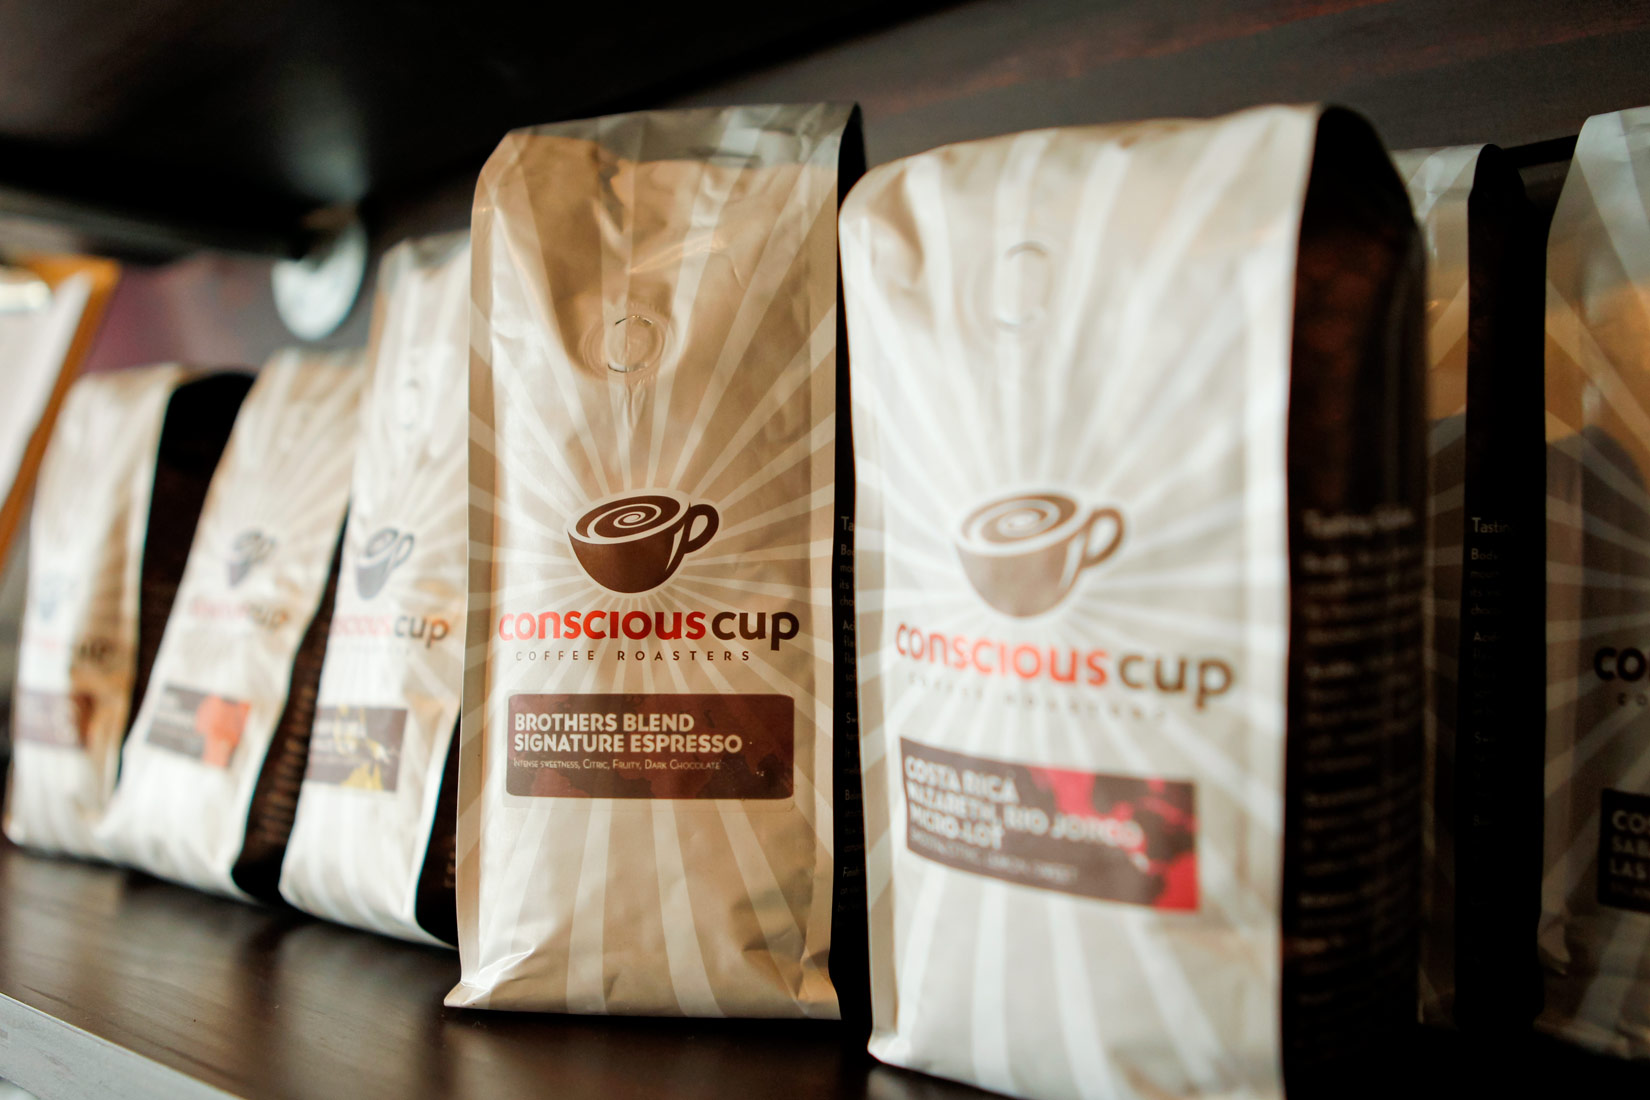 conscious-cup-coffee-marketing-commercial-promotional-photography-ruthie-hauge-madison-wi13.jpg